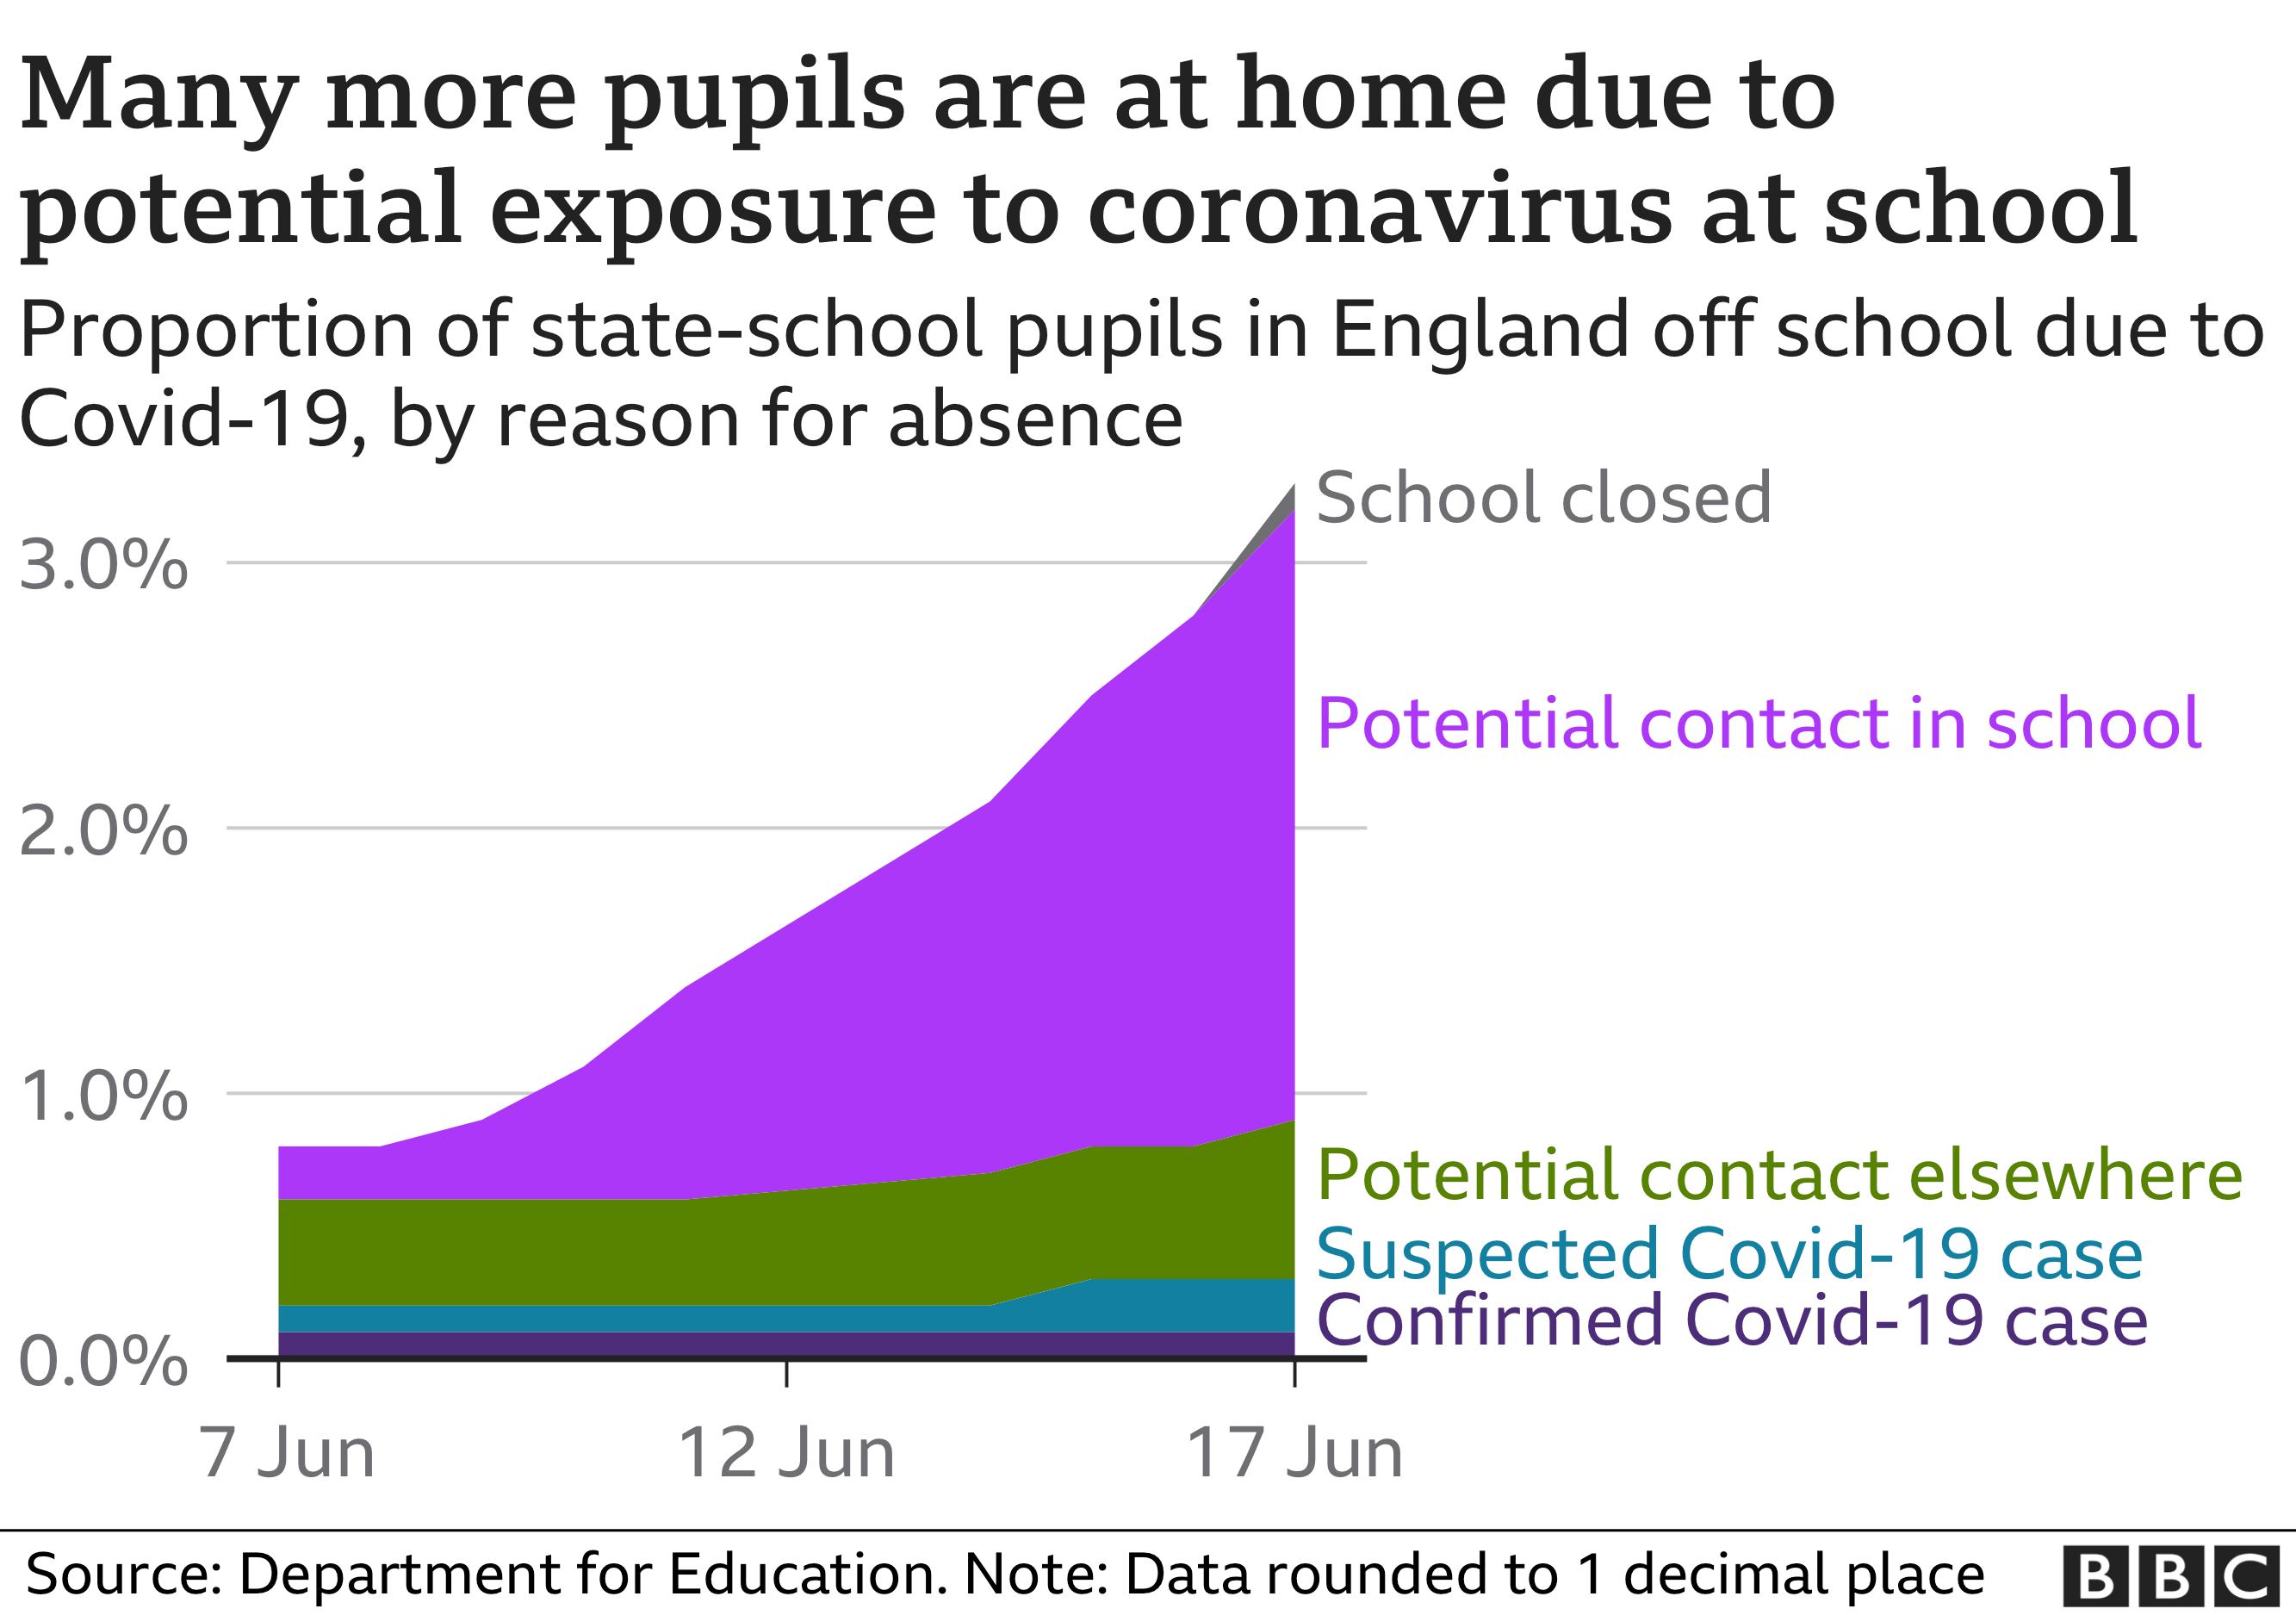 Proportion of state pupils in England absent due to Covid